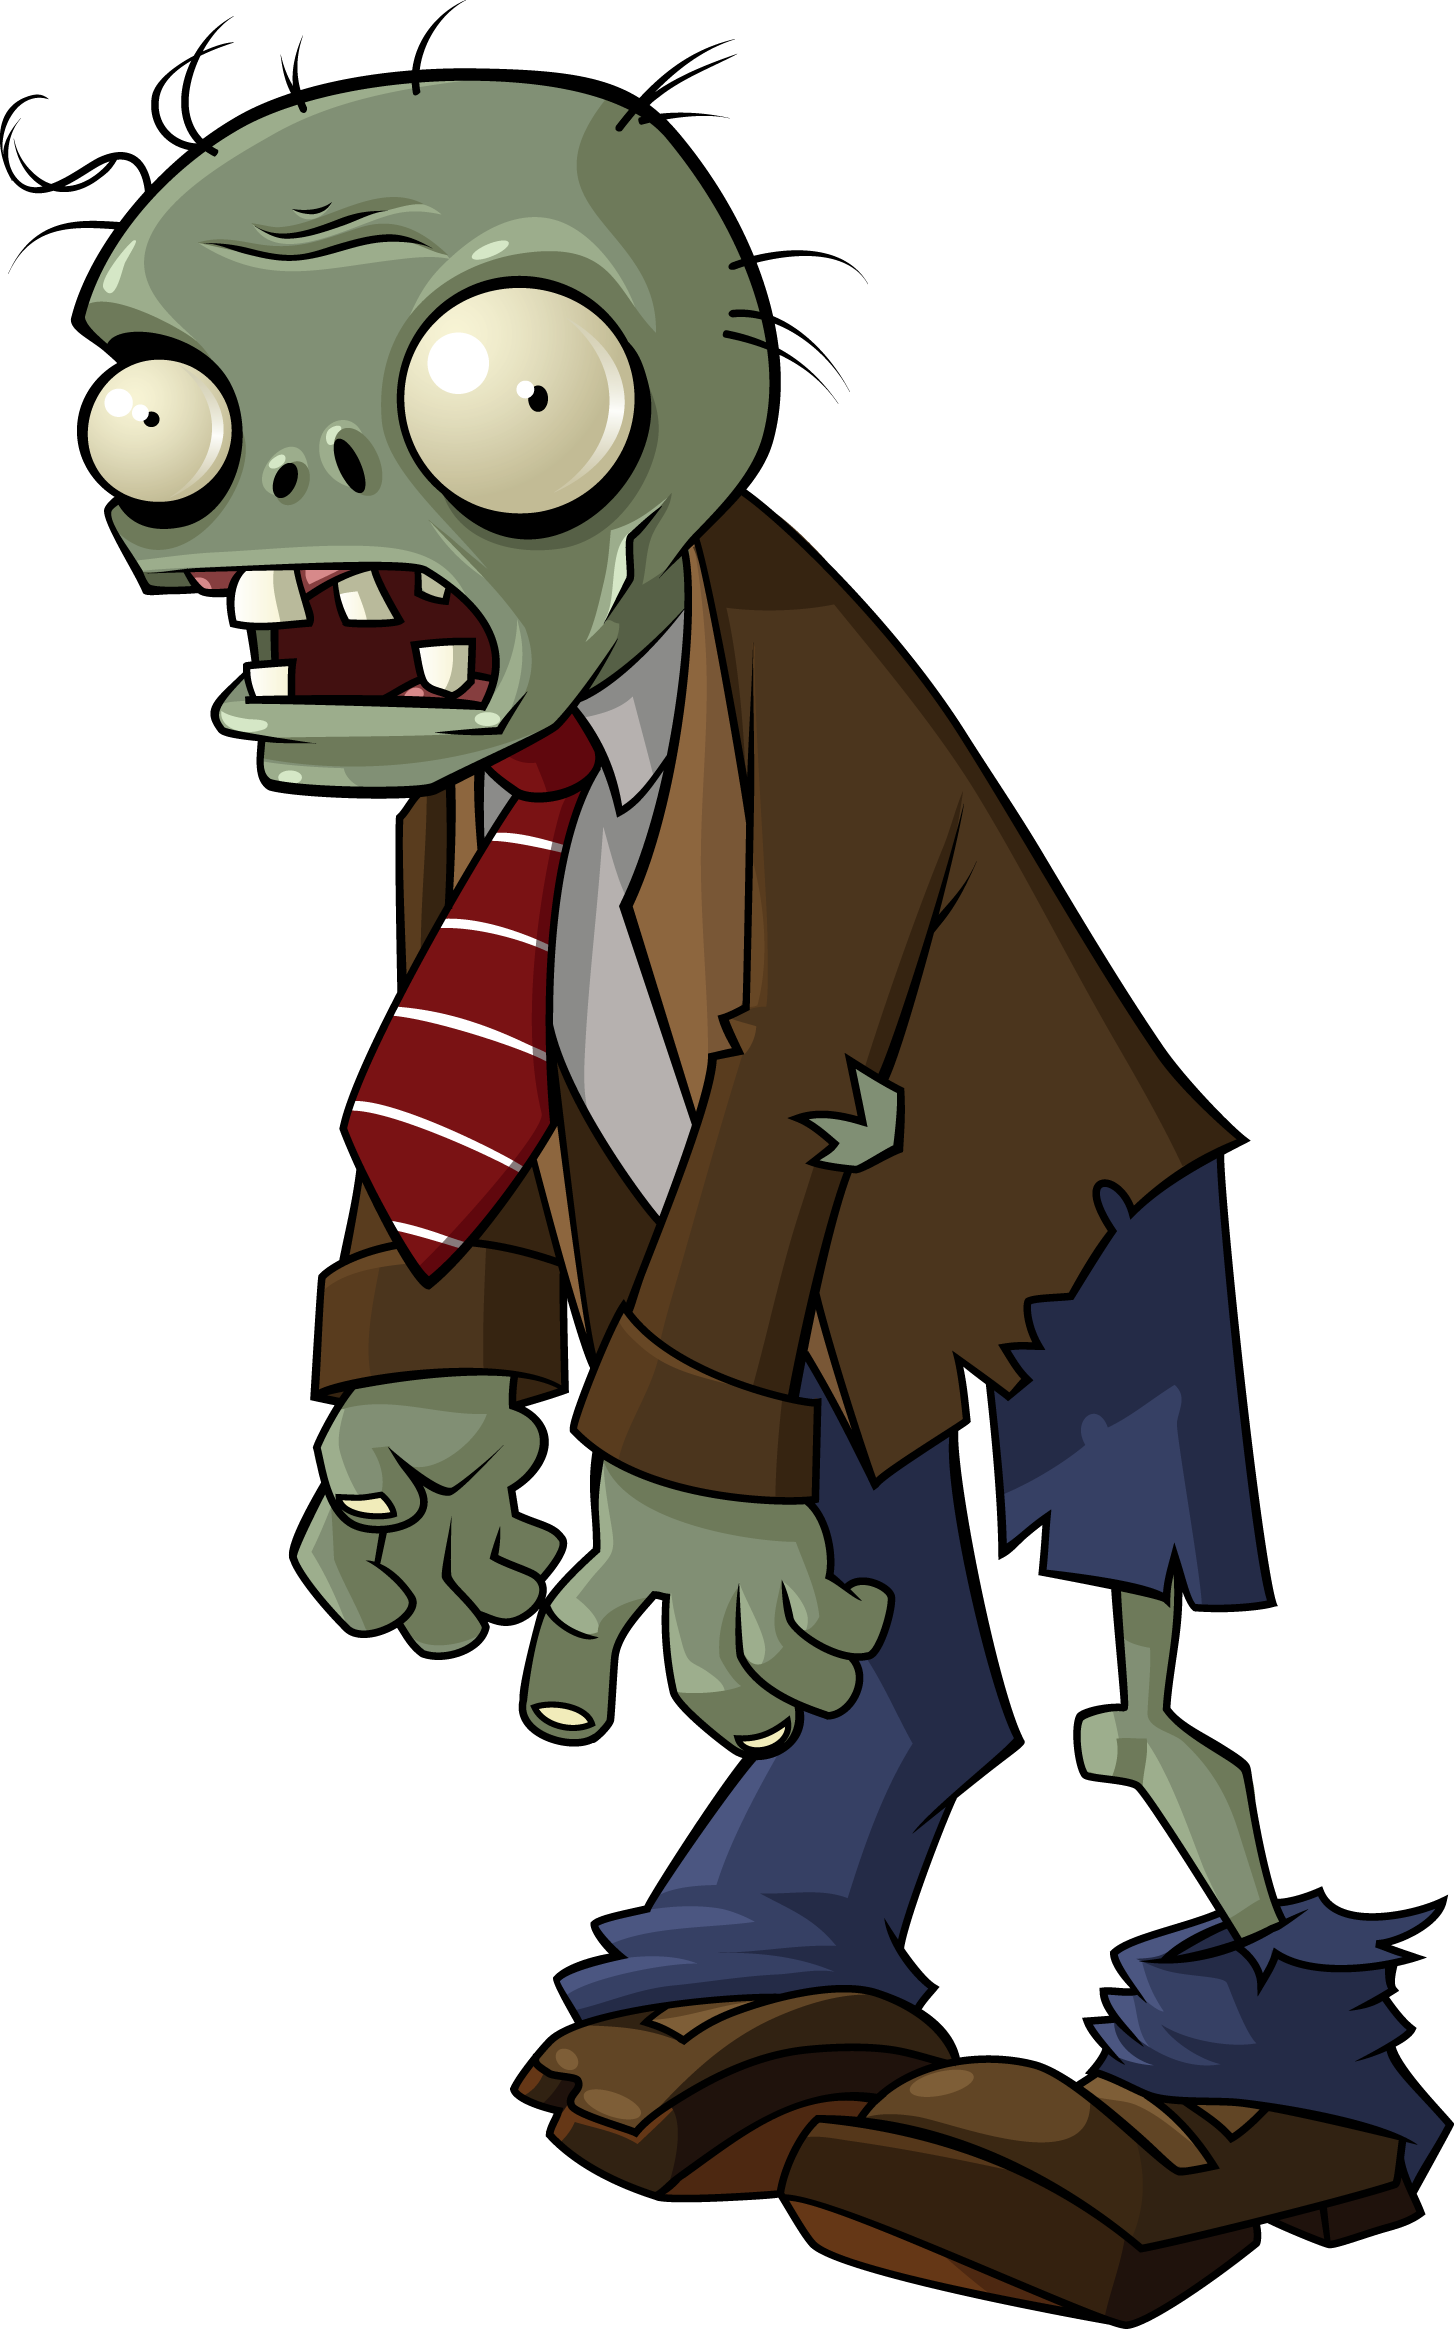 http://vignette2.wikia.nocookie.net/gaming-galaxies/images/c/ca/PVZ_Zombie_Suit.png/revision/latest?cb=20131101224657